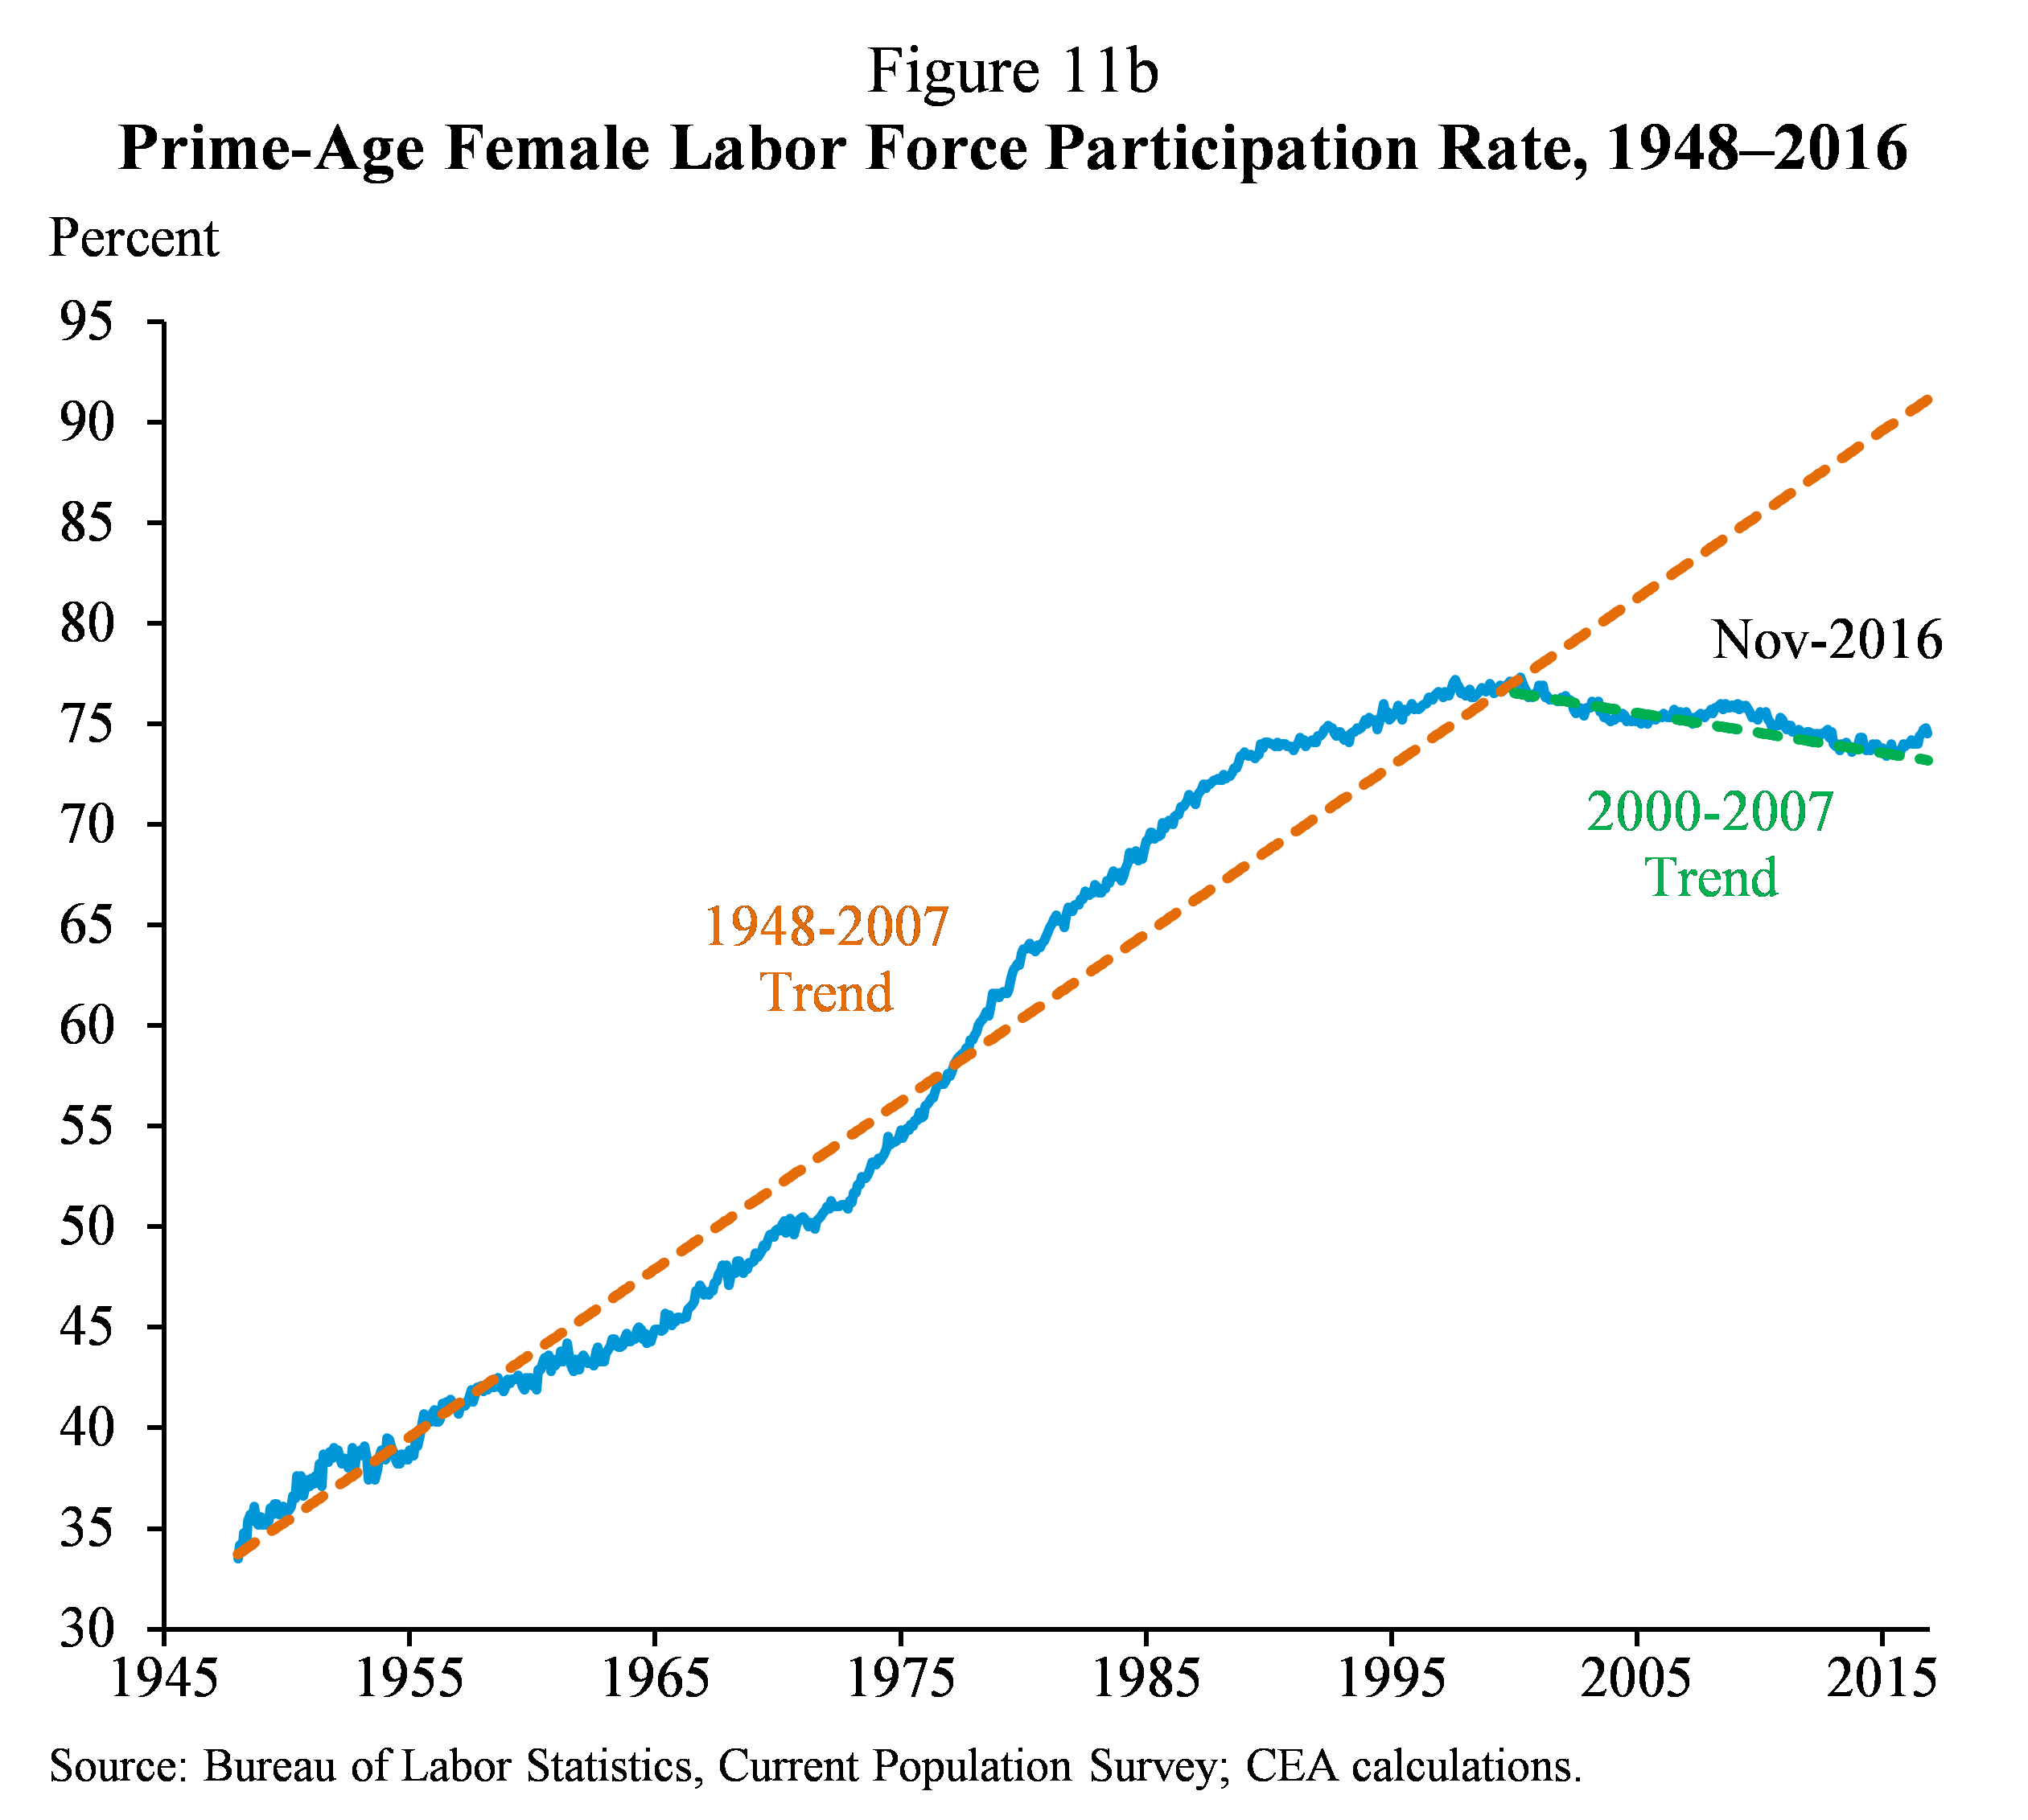 Figure 11b.  Prime-Age Female Labor Force Participation Rate, 1948-2016